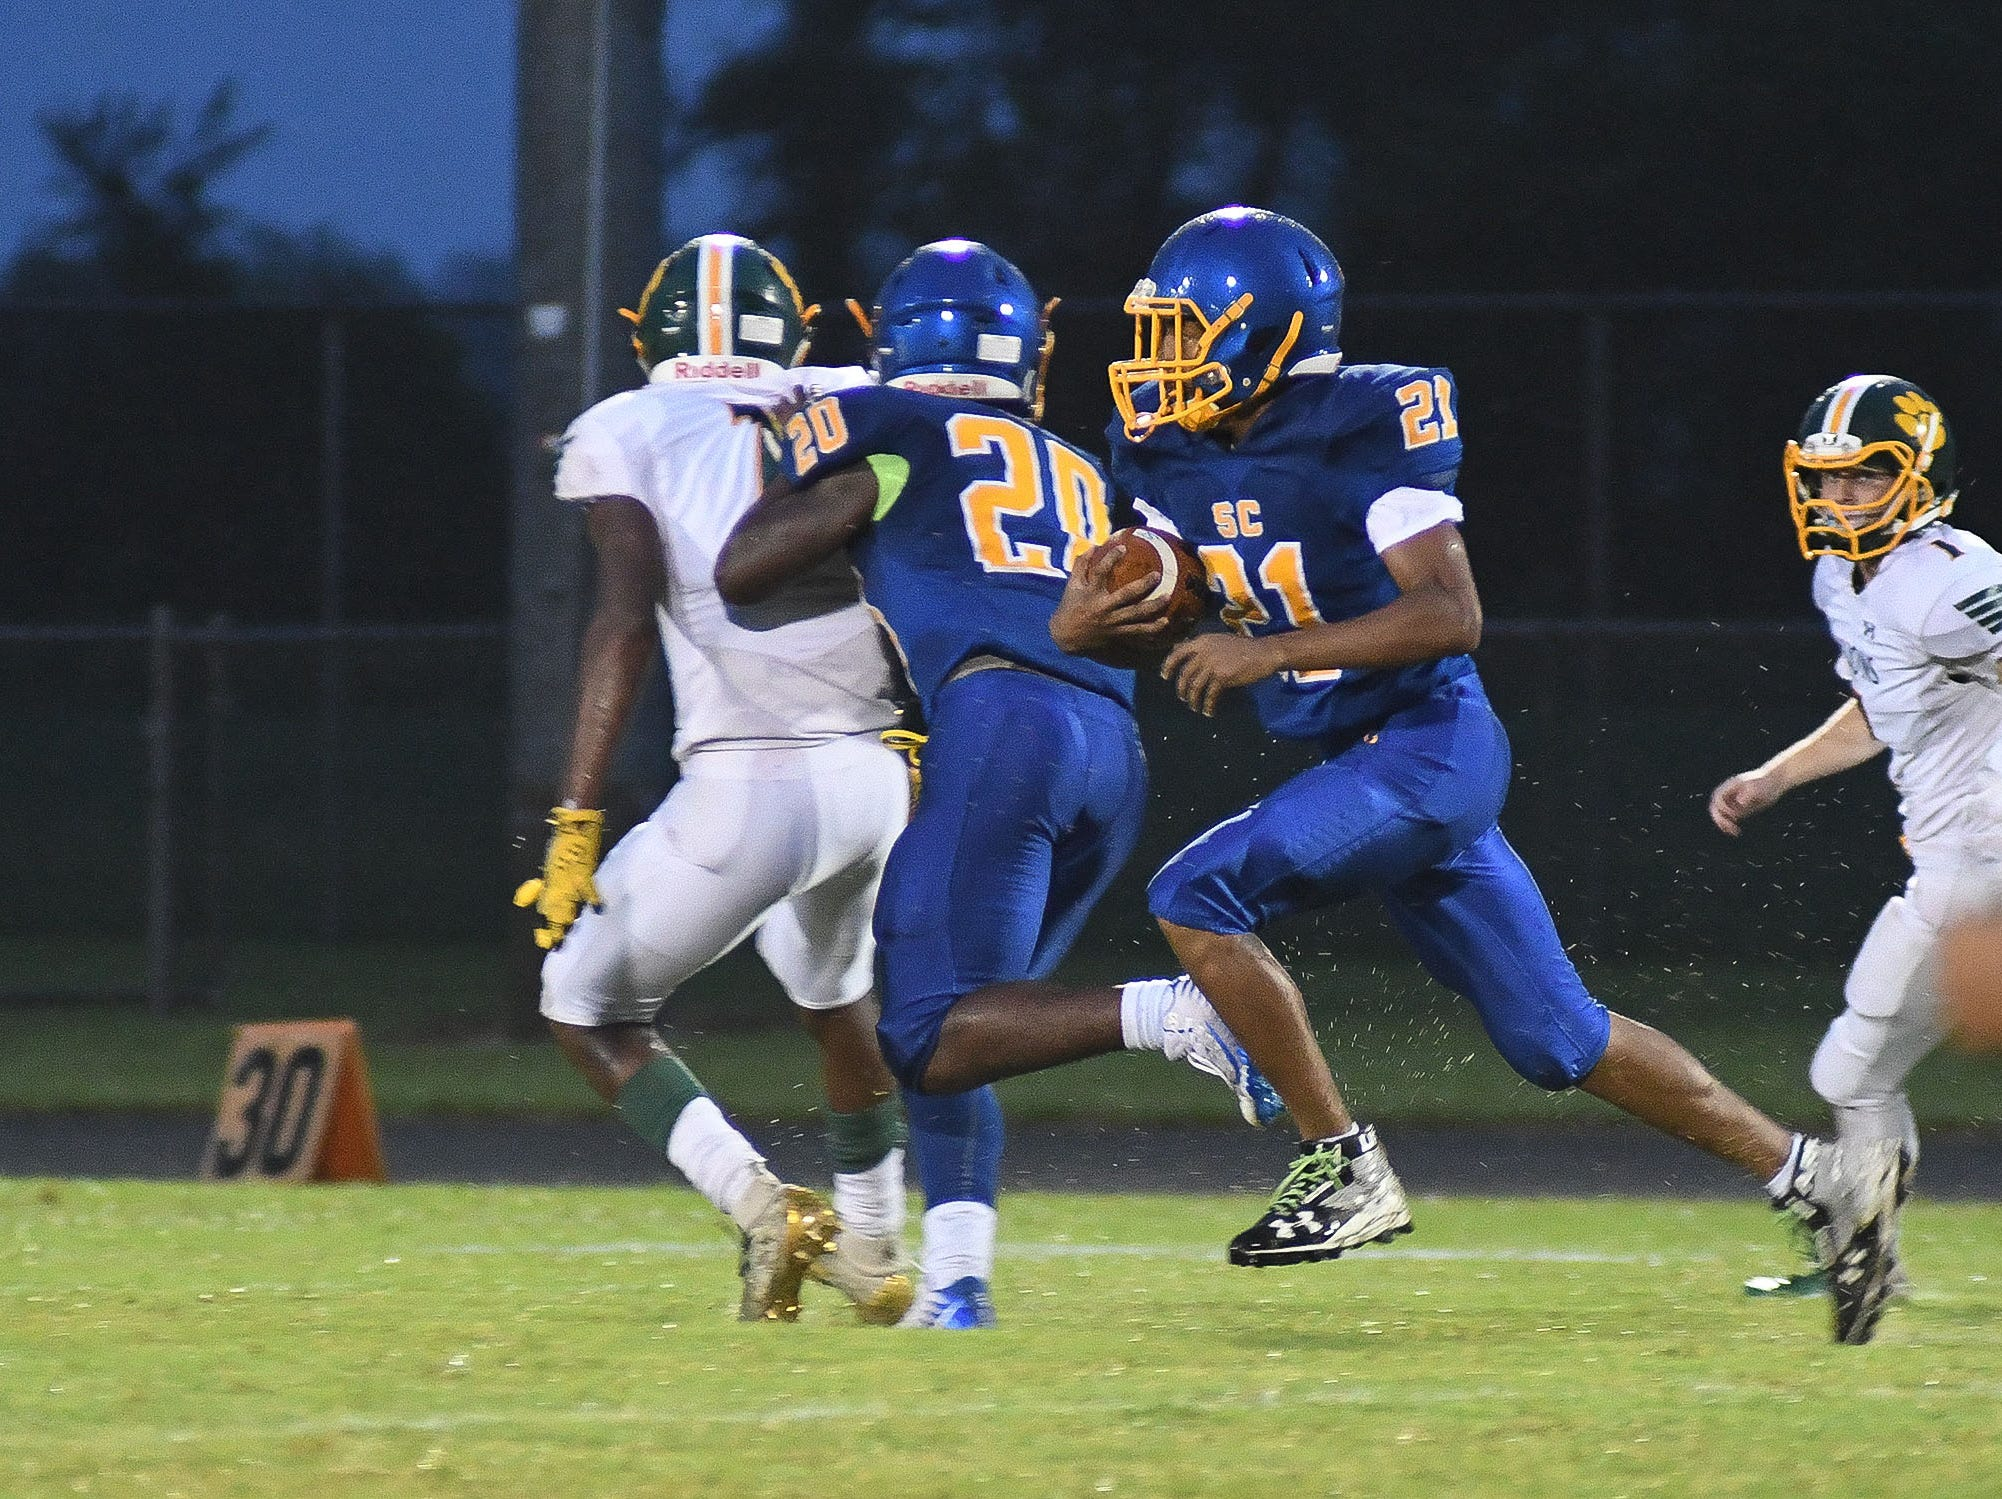 Sussex Central's TyJhir Sheppard-Parker (21) with the carry against Queen Anne on Friday, Sept. 14, 2018.